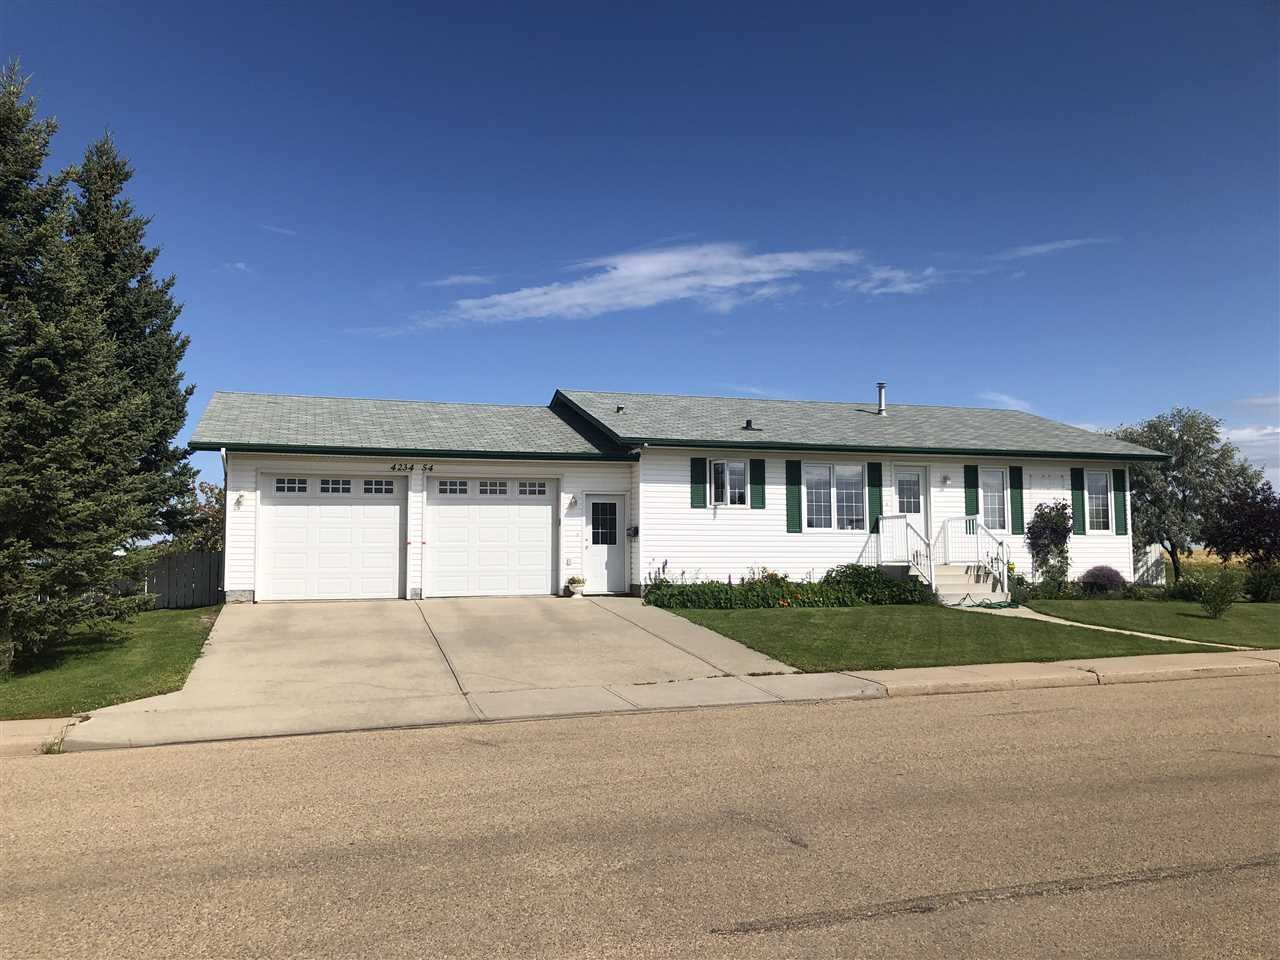 MLS® listing #E4170974 for sale located at 4234 54 Avenue